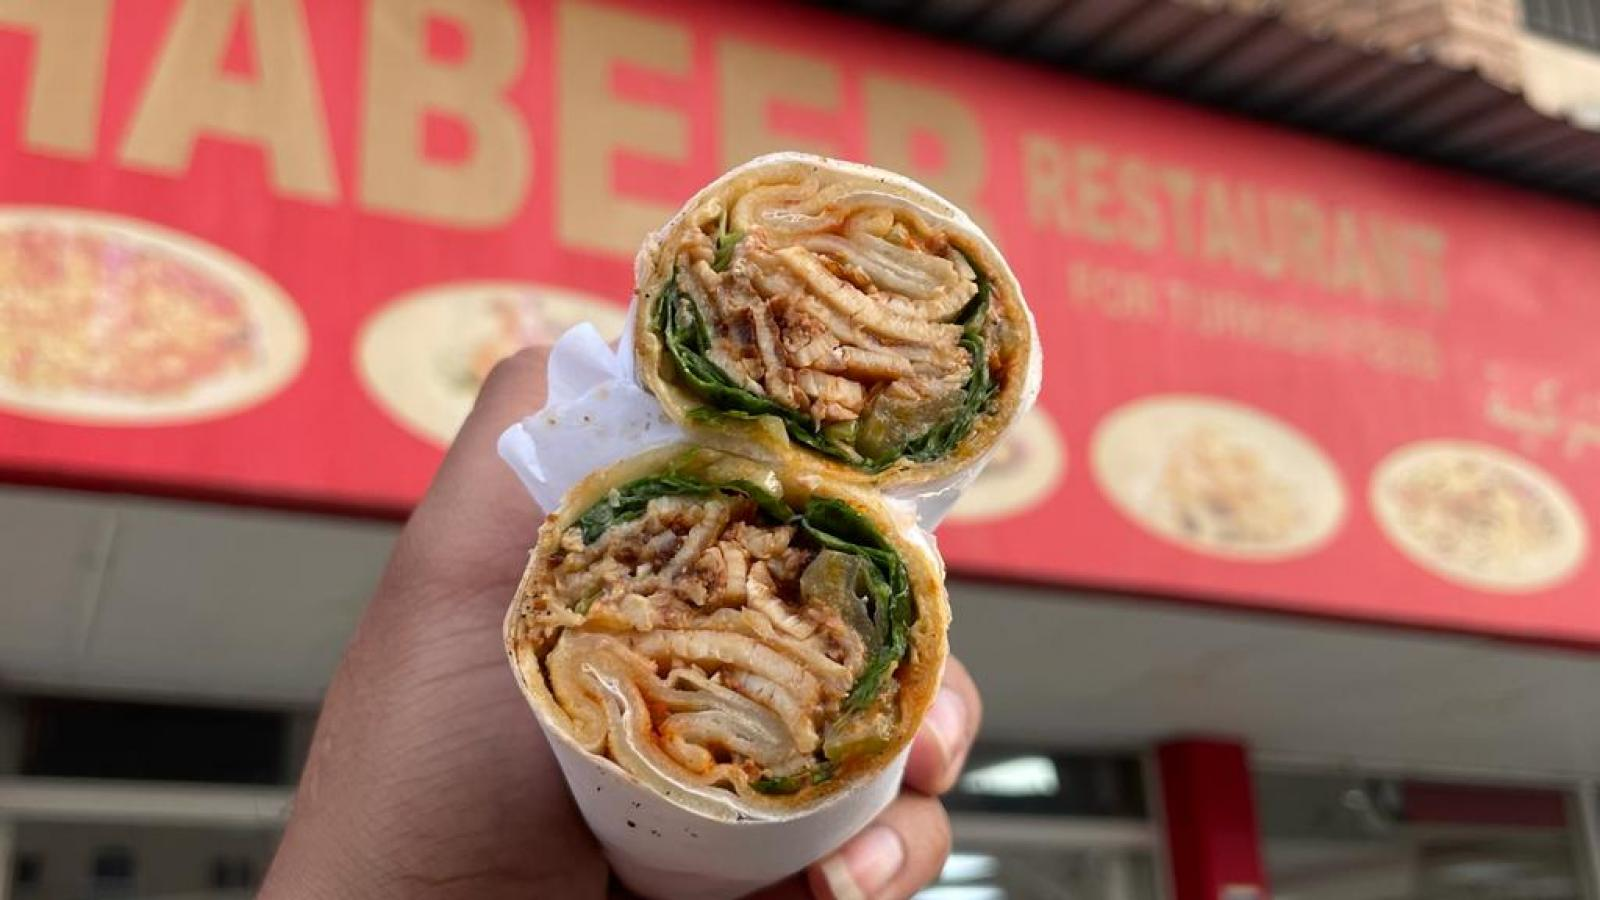 Top 5 shawarma spots you must try in Qatar